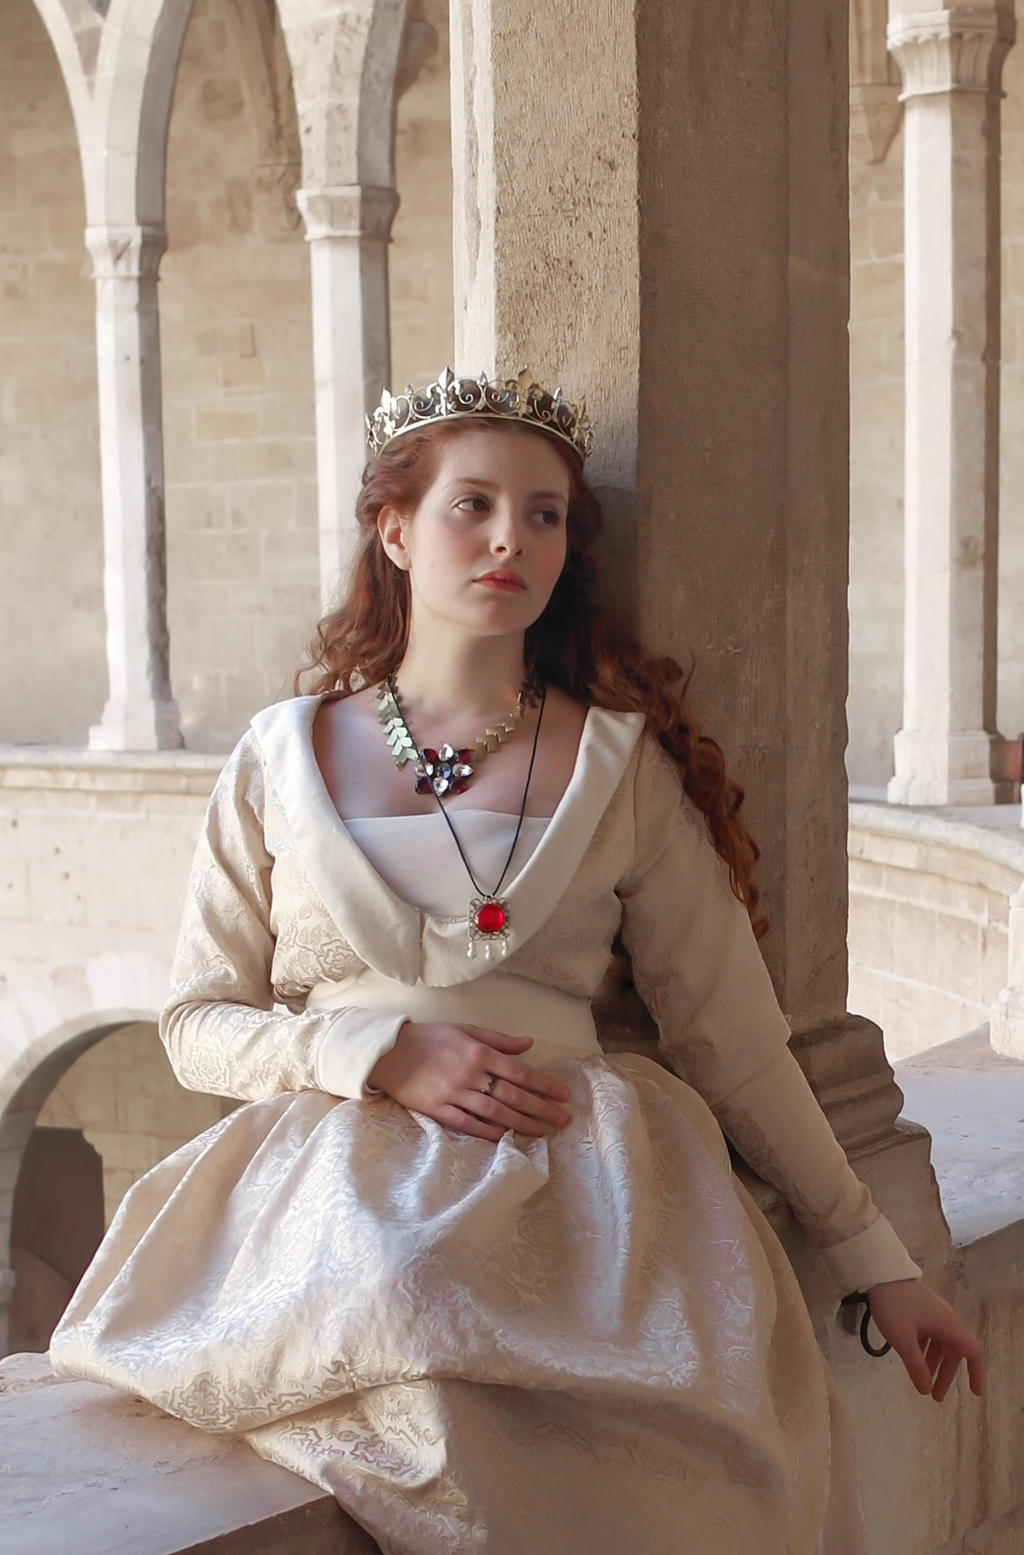 The white queen dress